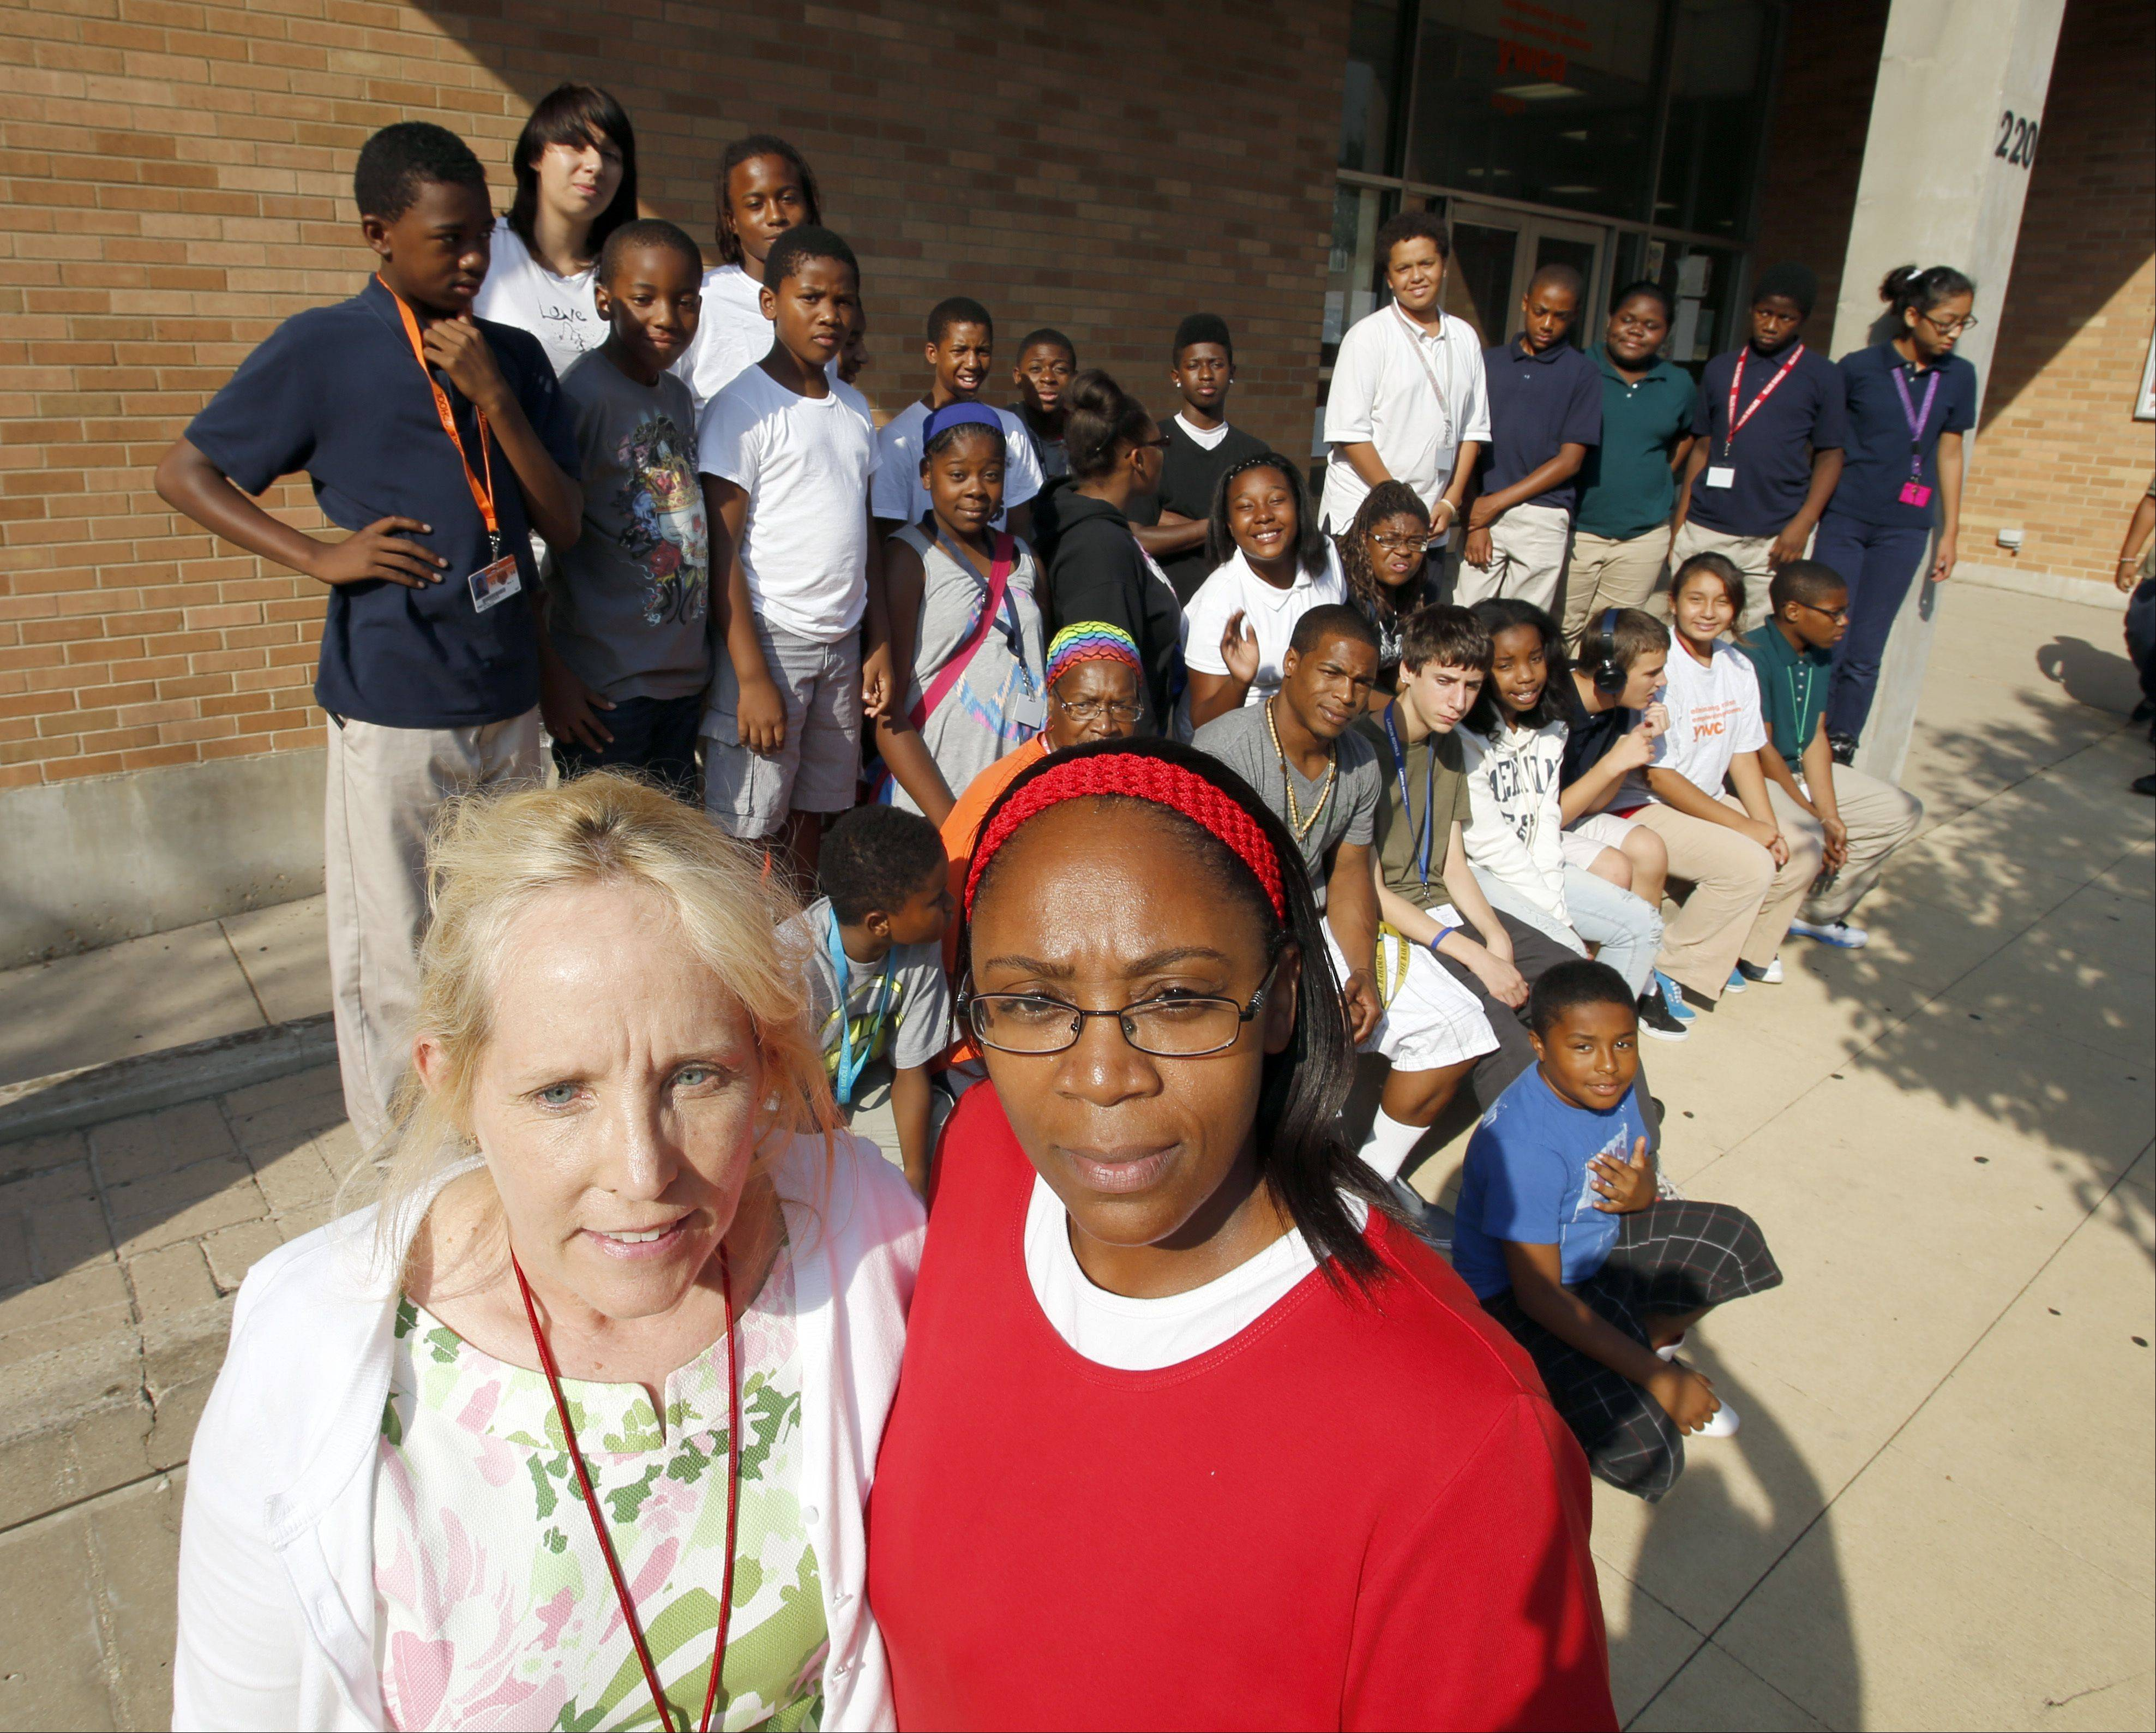 Julia McLendon, chief executive officer of the YWCA in Elgin and India Smith, its youth services director, say that about 30 black kids from their Teen Reach program were racially profiled during a field trip to the Dolphin Cove Family Aquatic Center in Carpentersville. Many of the teens pictured were a part of the outing. A Dundee Township Park District official, however, says the kids weren't following aquatic center rules.